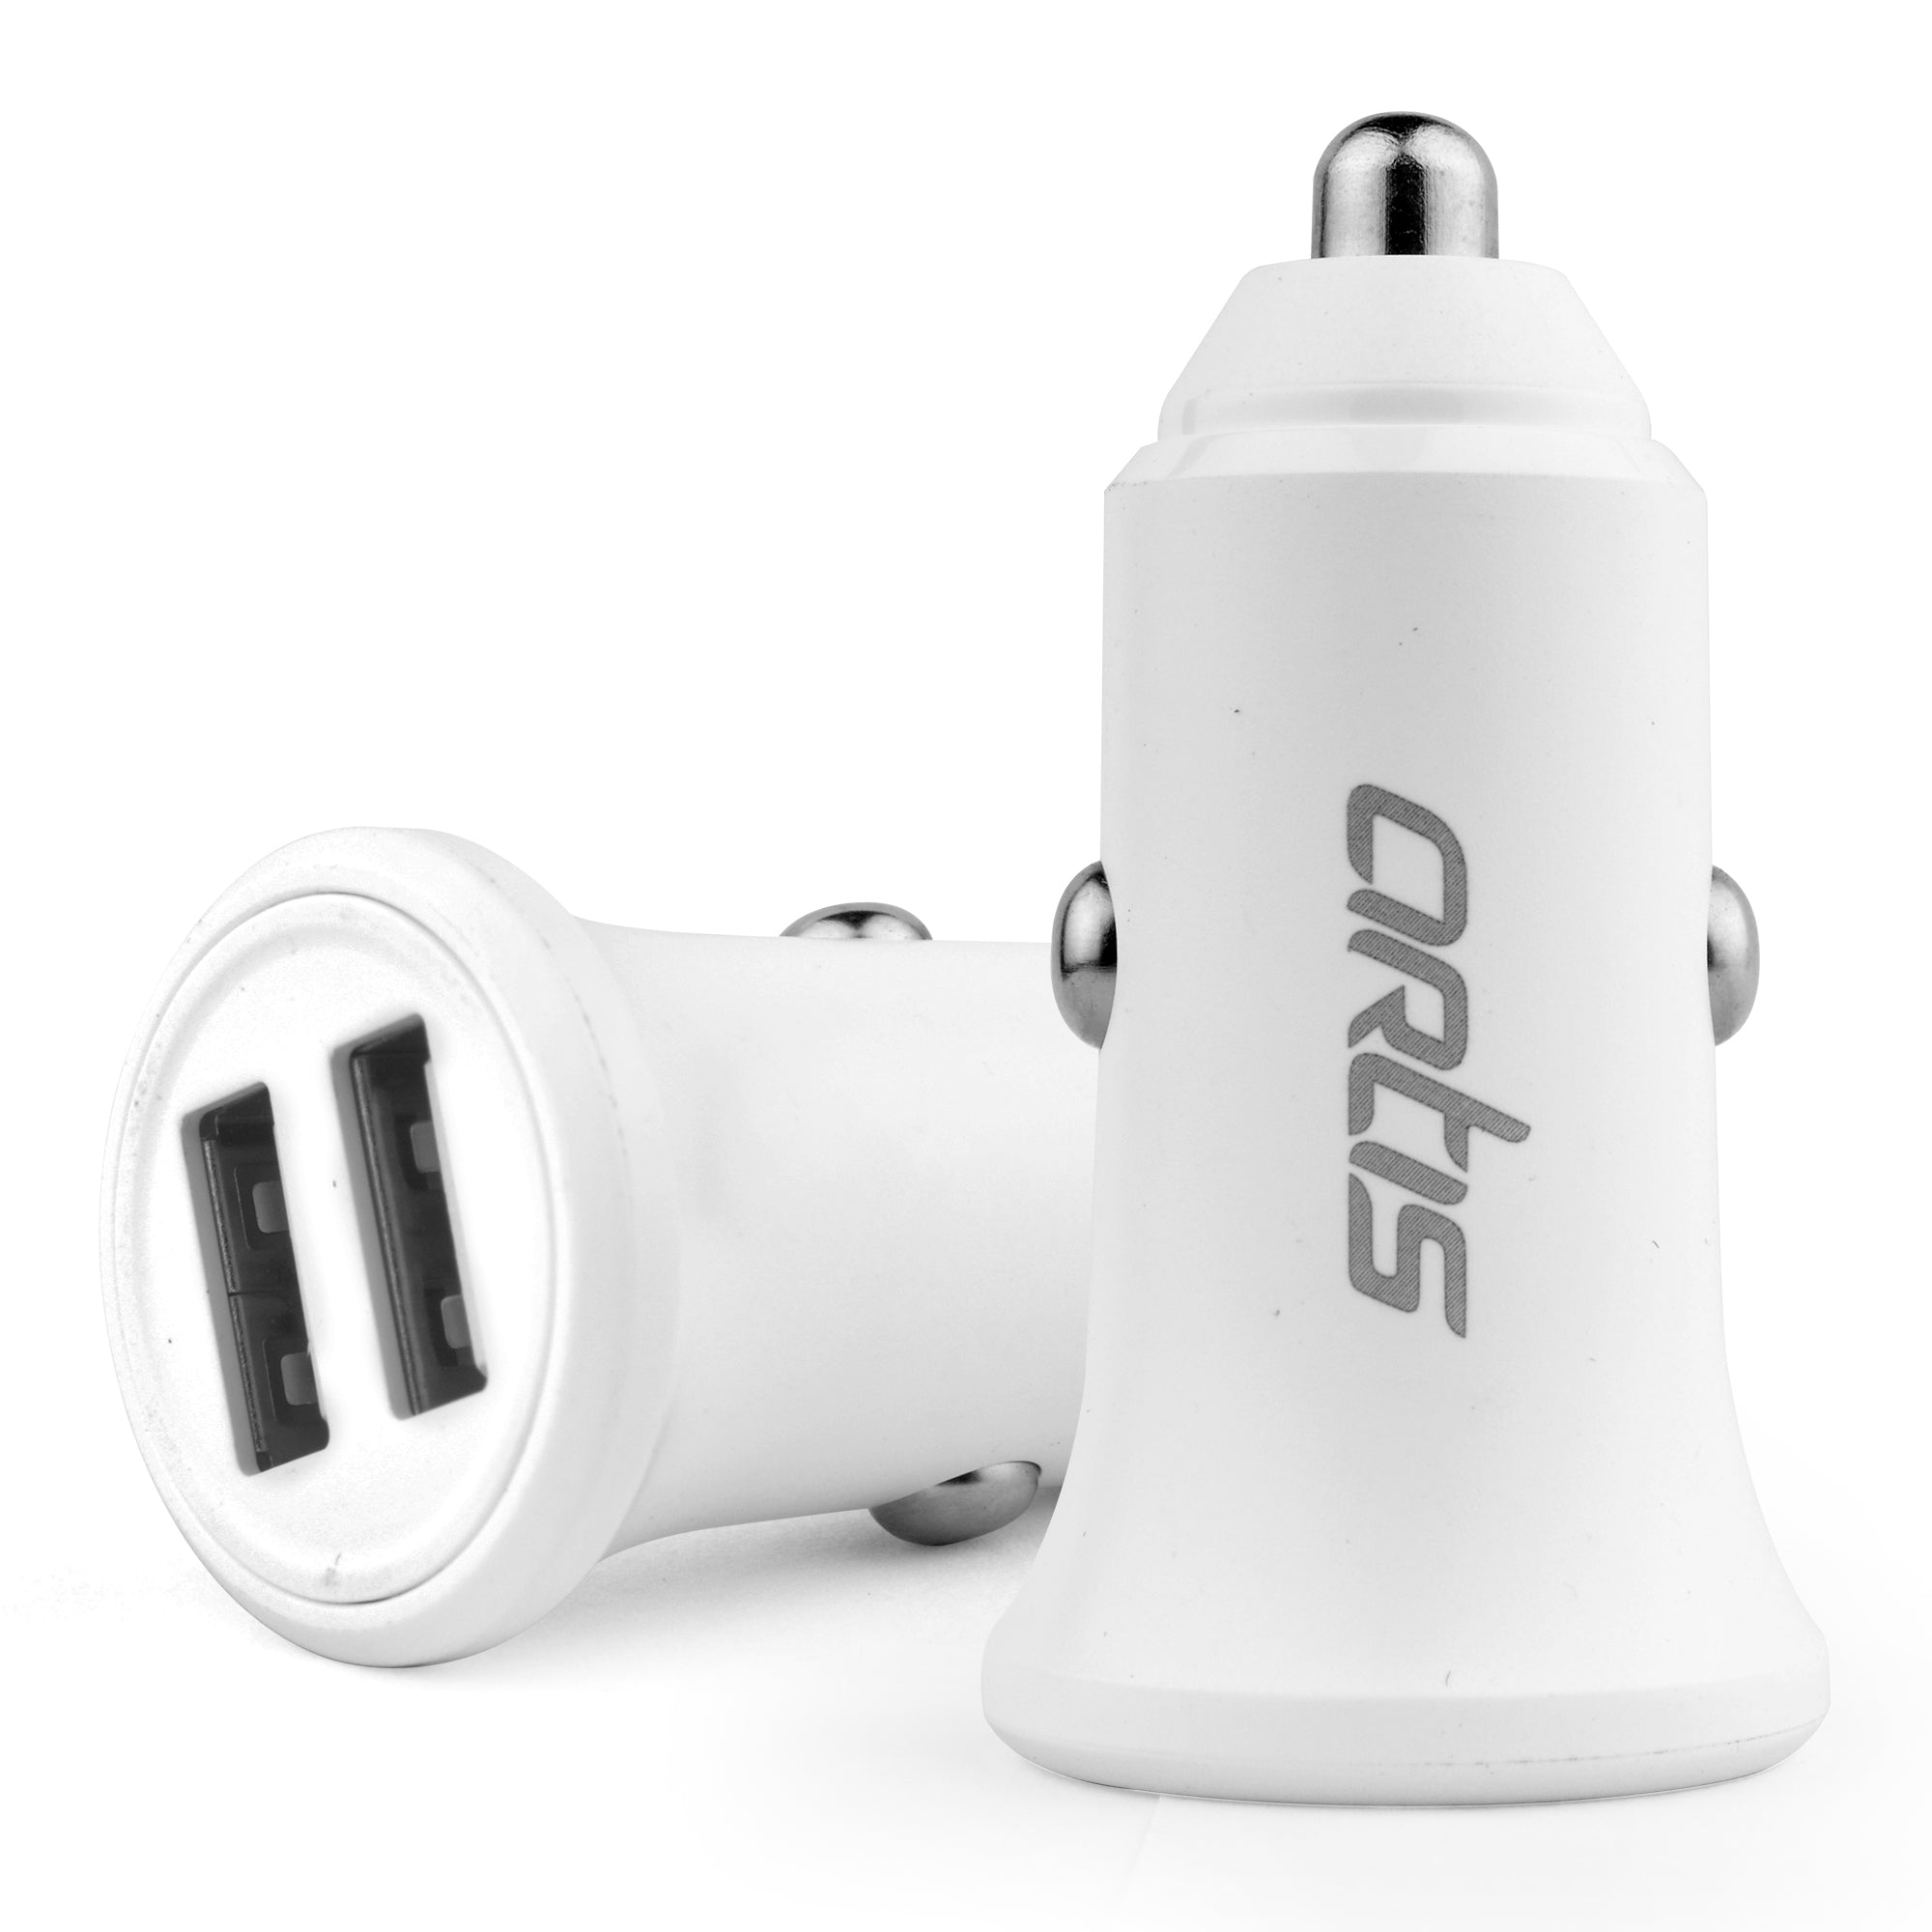 UC200 Car Charger